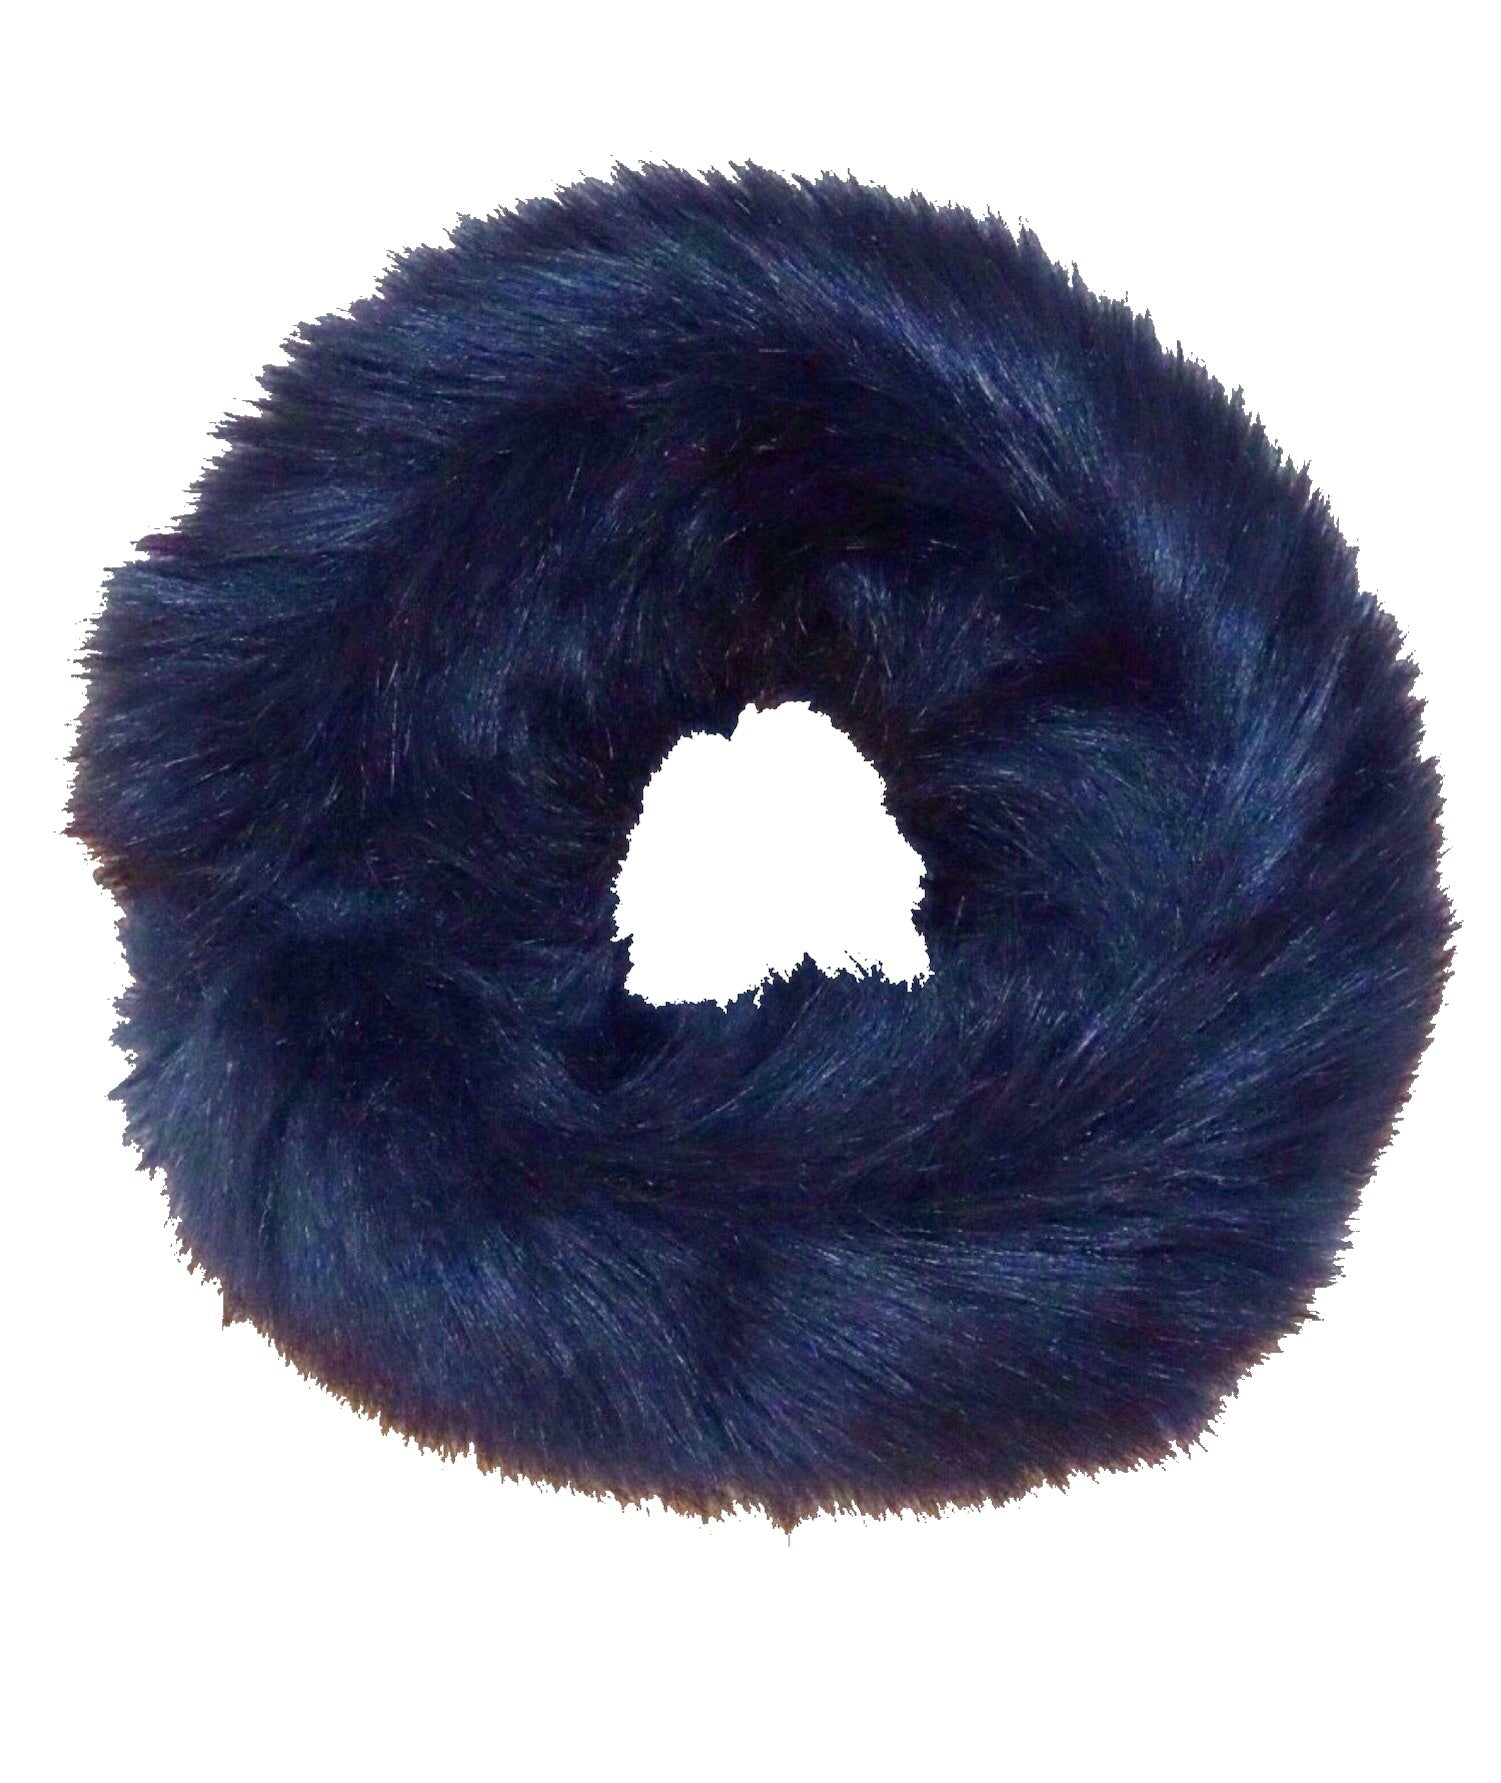 Luxury Faux Fur Headband in Black - Roo's Online Shop - children's clothes - Mary Jane shoes -